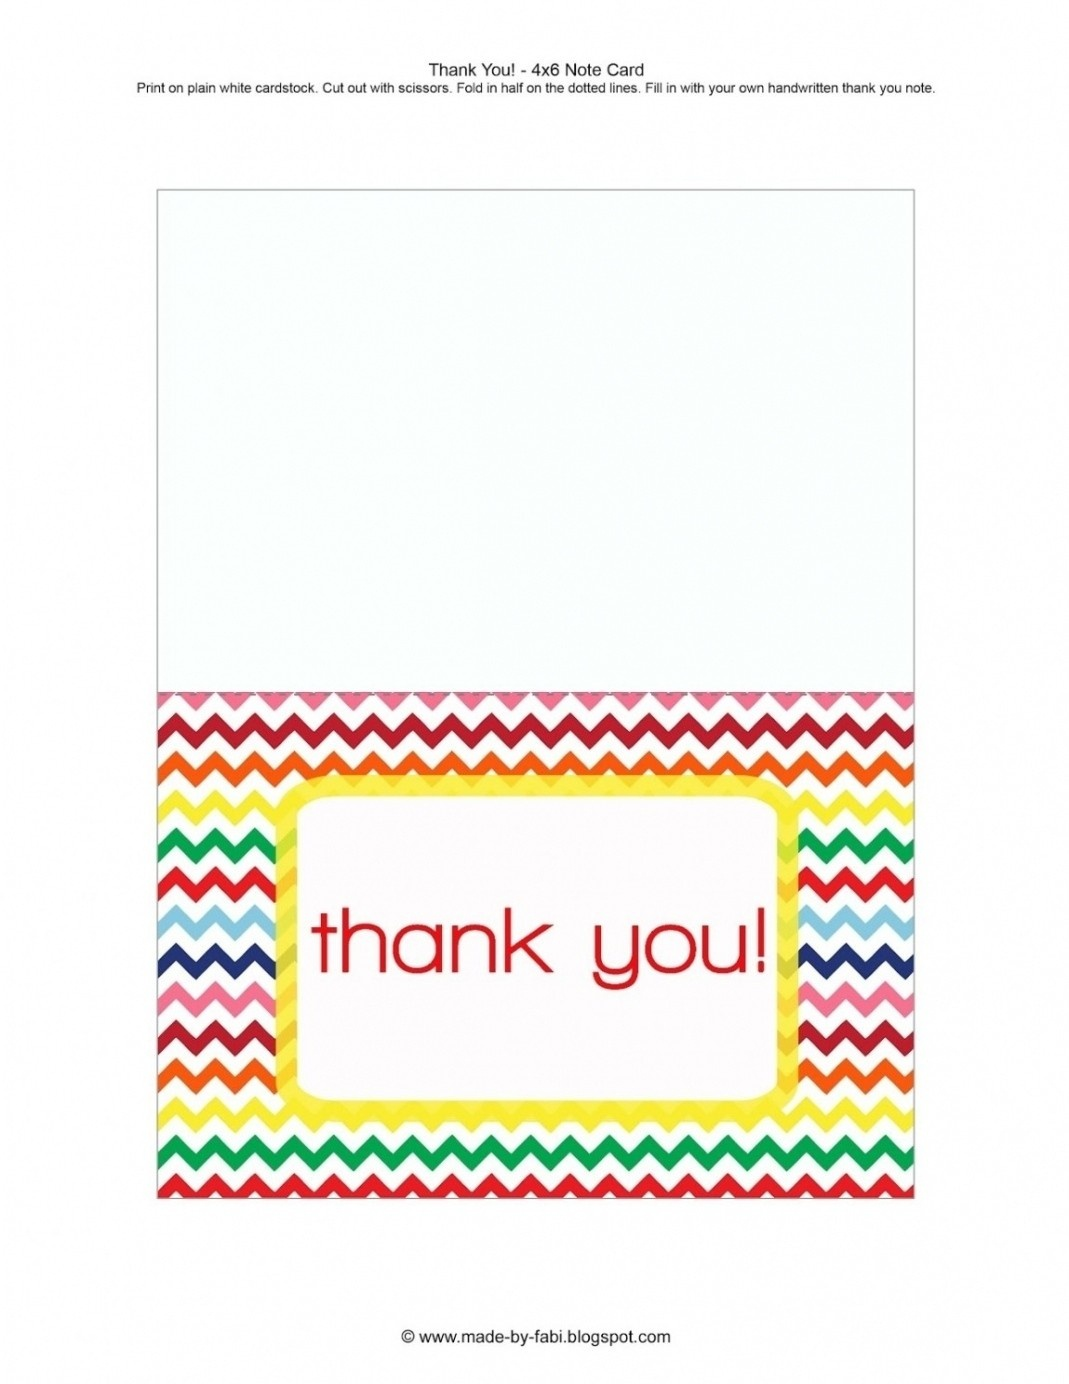 Free Printable Thank You Card Template Word - Loveandrespect - Free Printable Card Templates